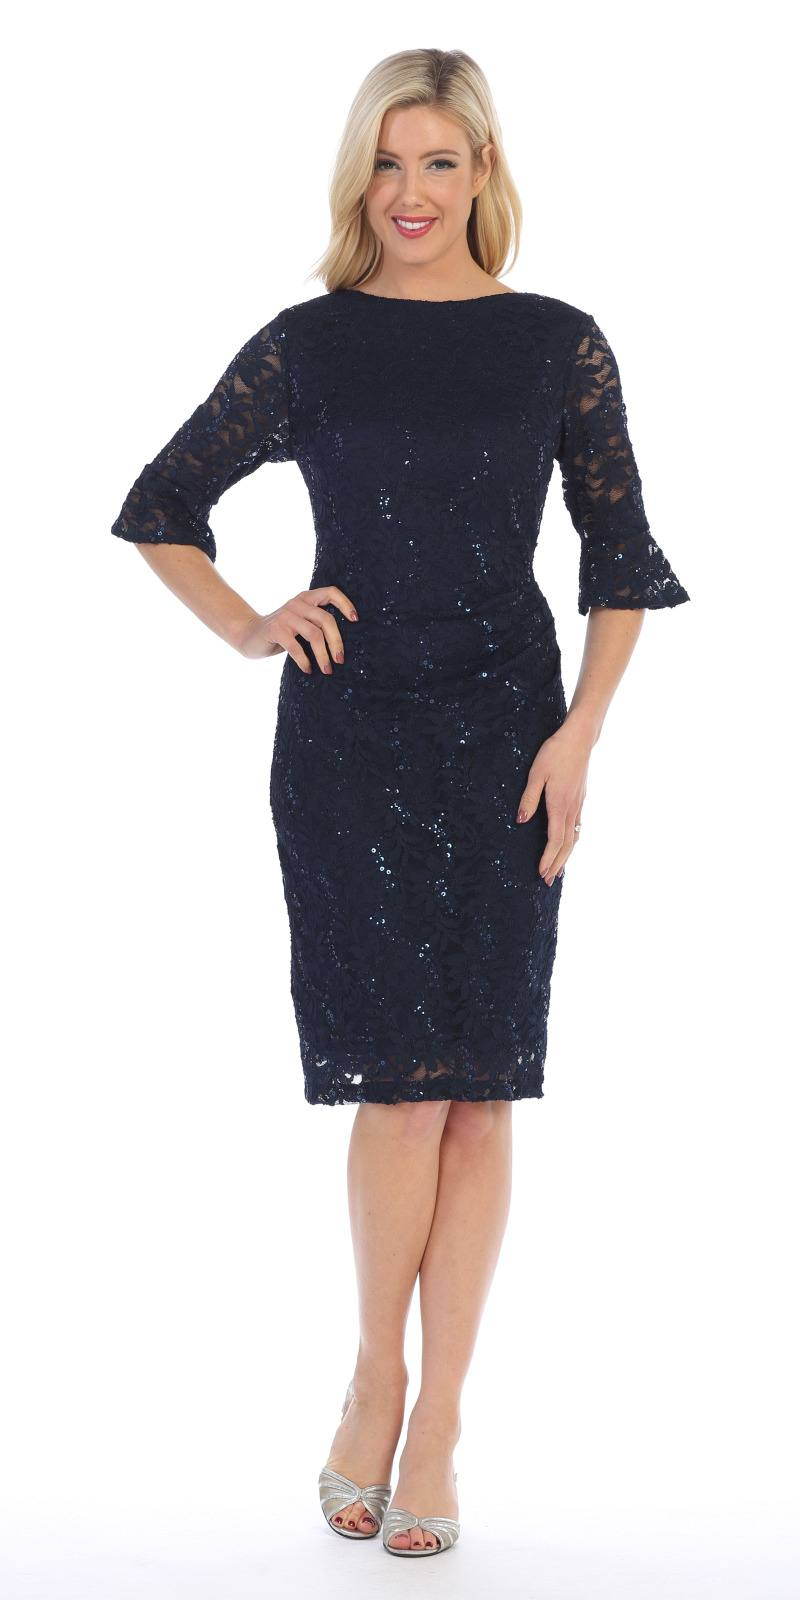 Wedding Guest Dresses With Sleeves.Short Wedding Guest Dress With Three Quarter Sleeves Navy Blue